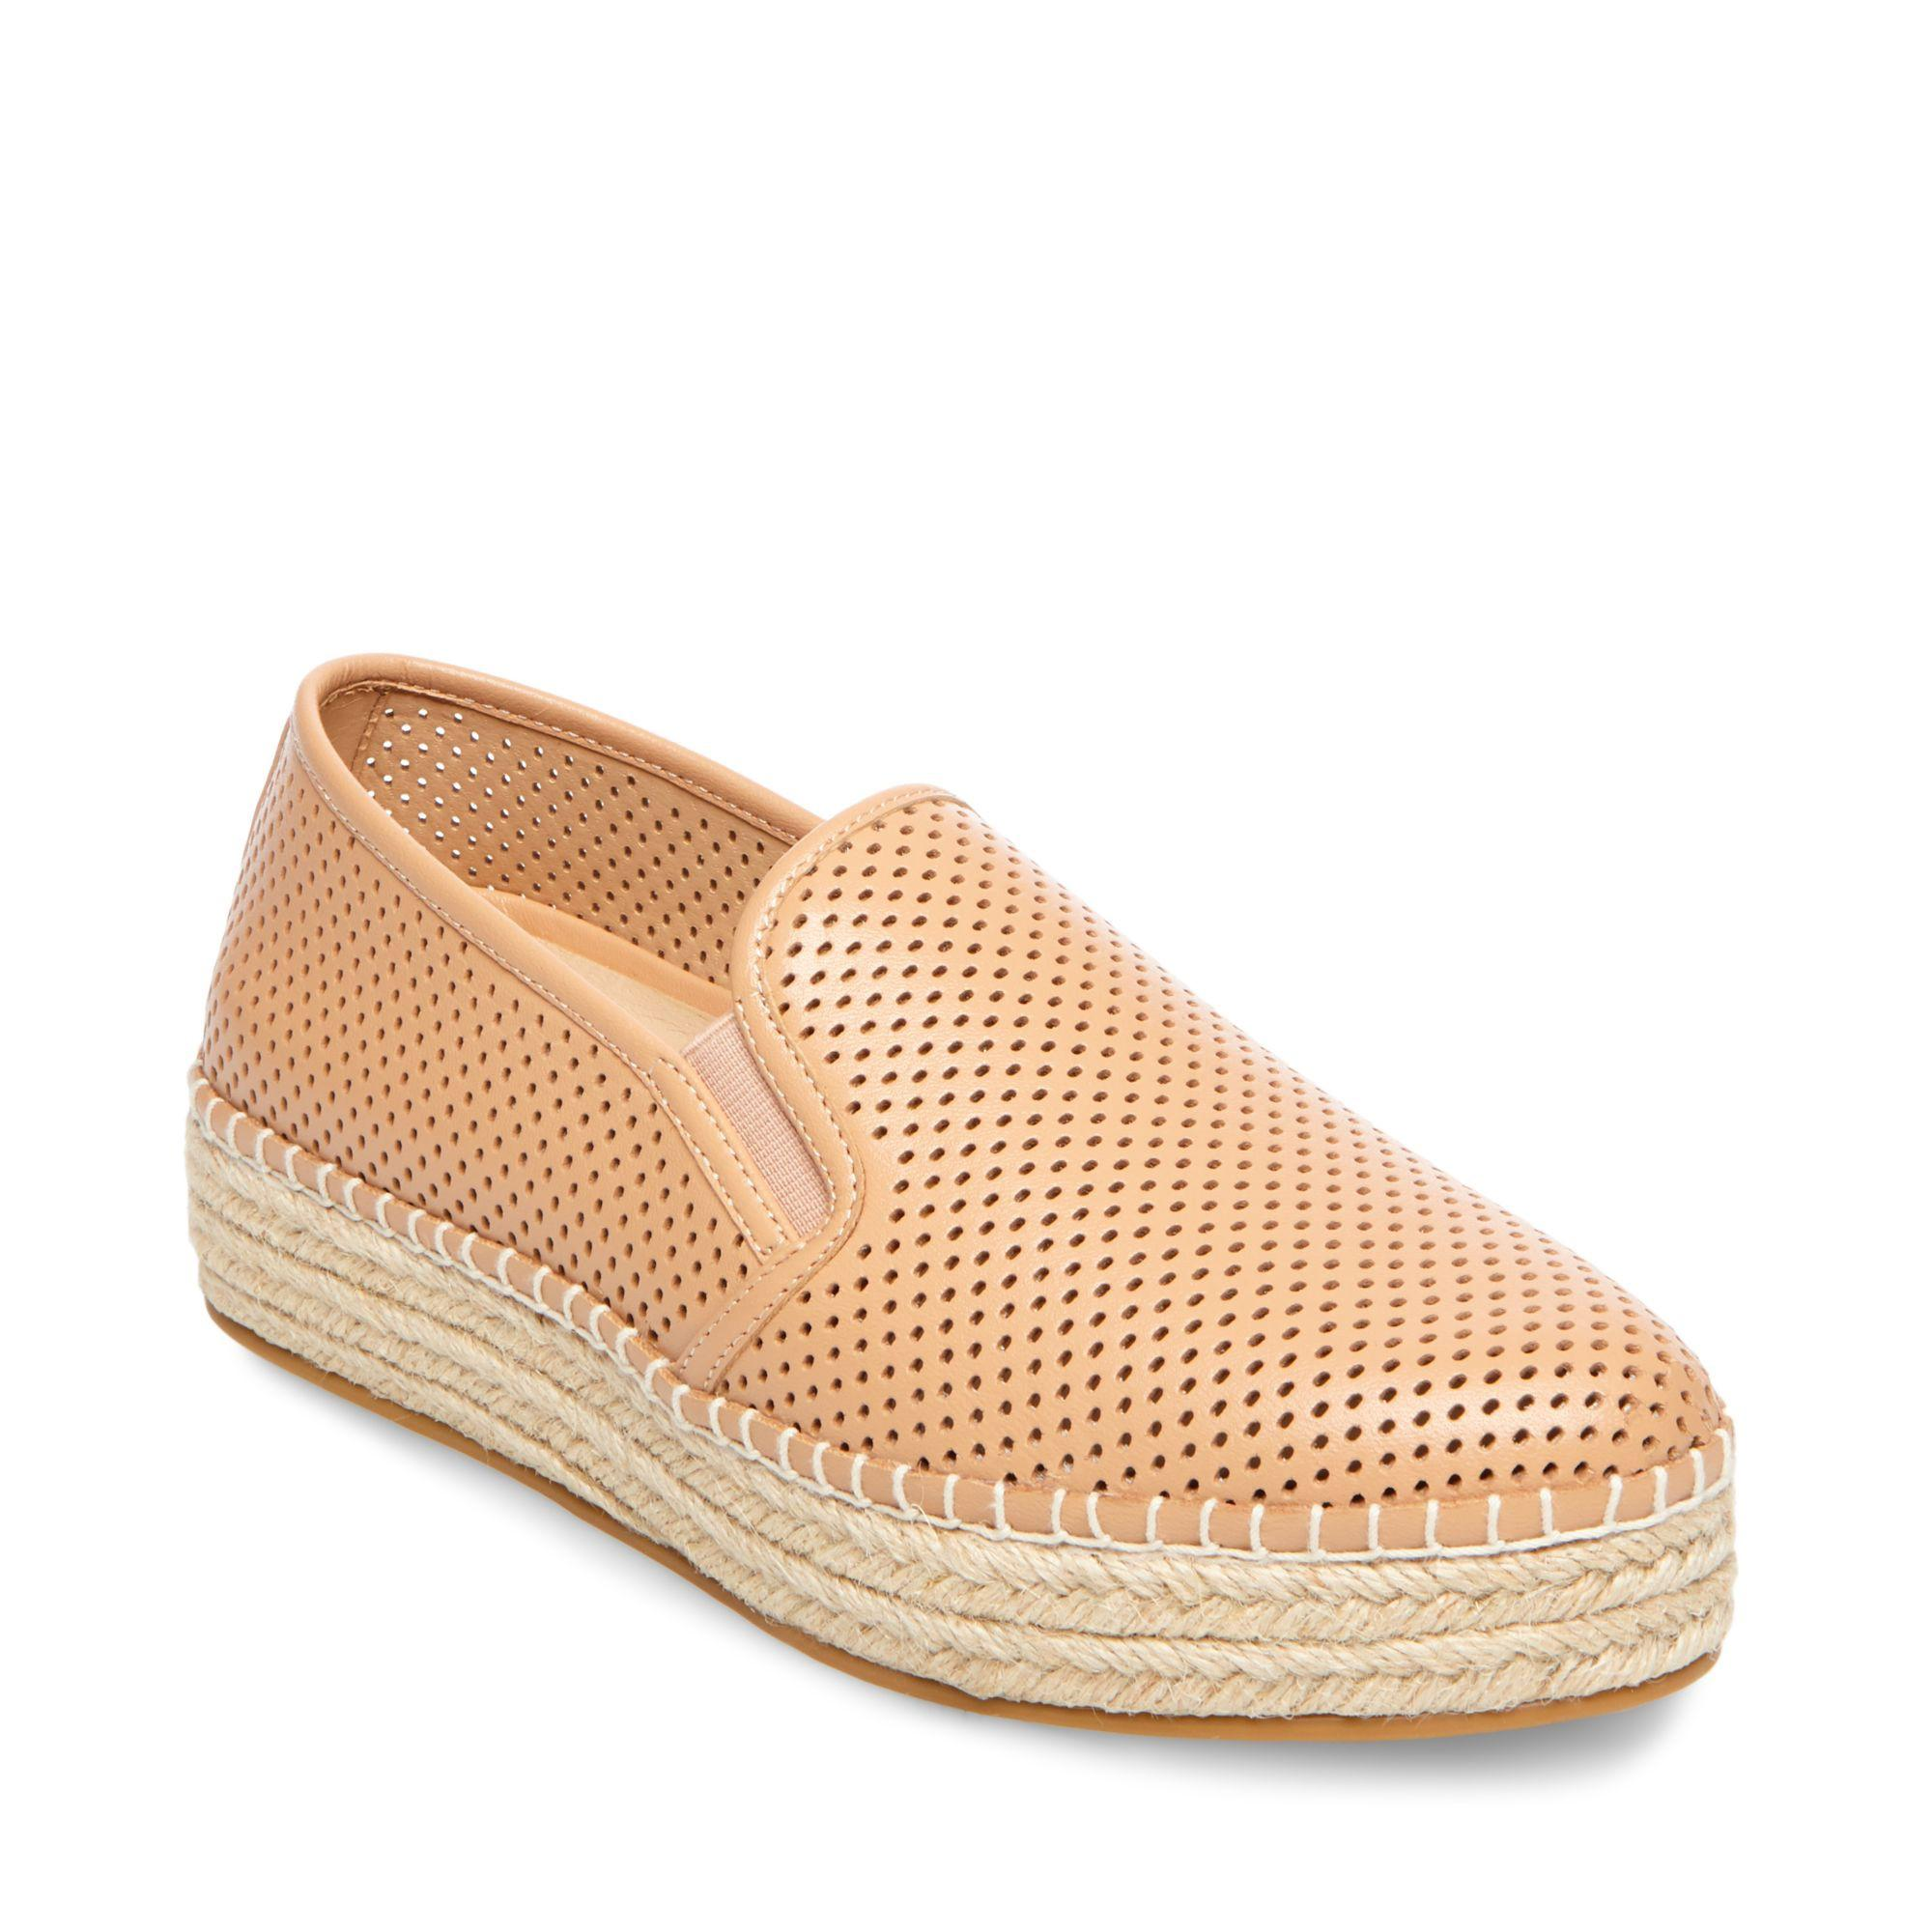 2bd0099bdbf STEVE MADDEN WRIGHT PERFORATED PLATFORM ESPADRILLE, GOLD LEATHER ...